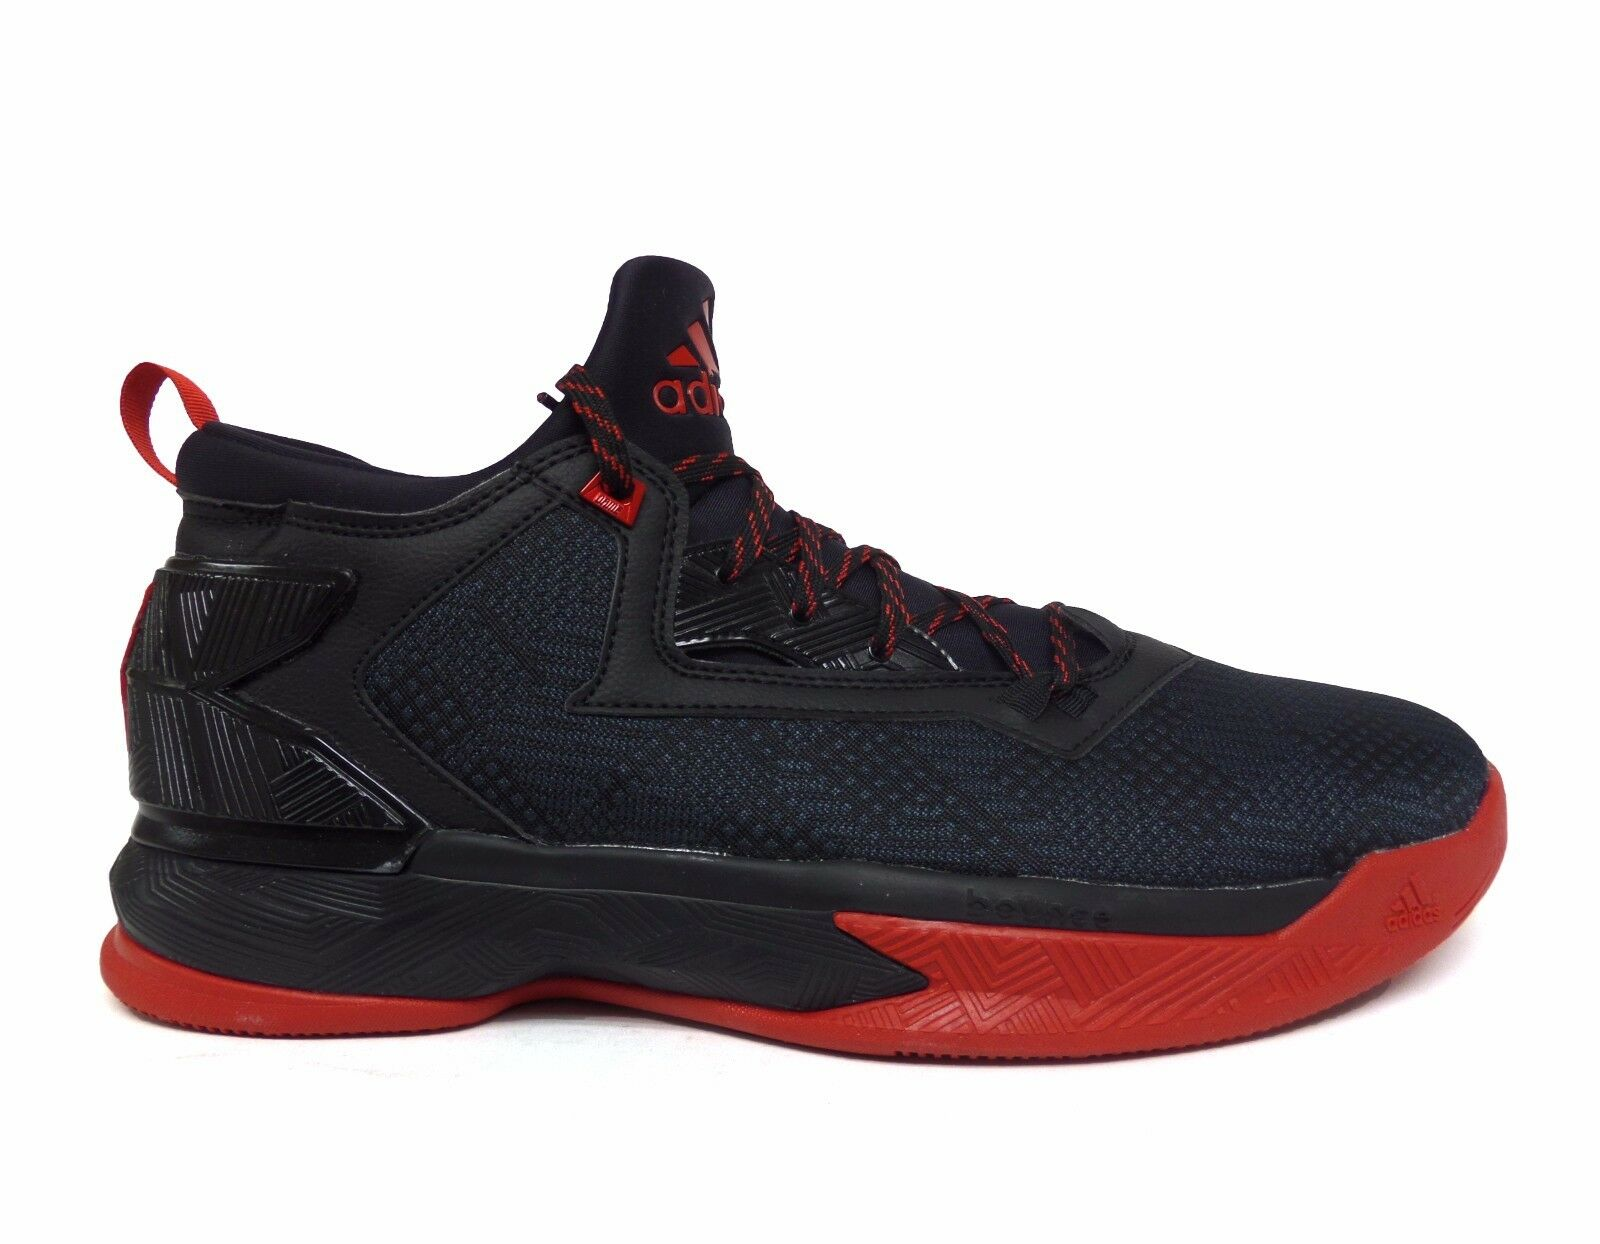 ... where can i buy adidas uomini d 2.0 lillard 2.0 d scarpe da basket  centro nero 1696a6eb397